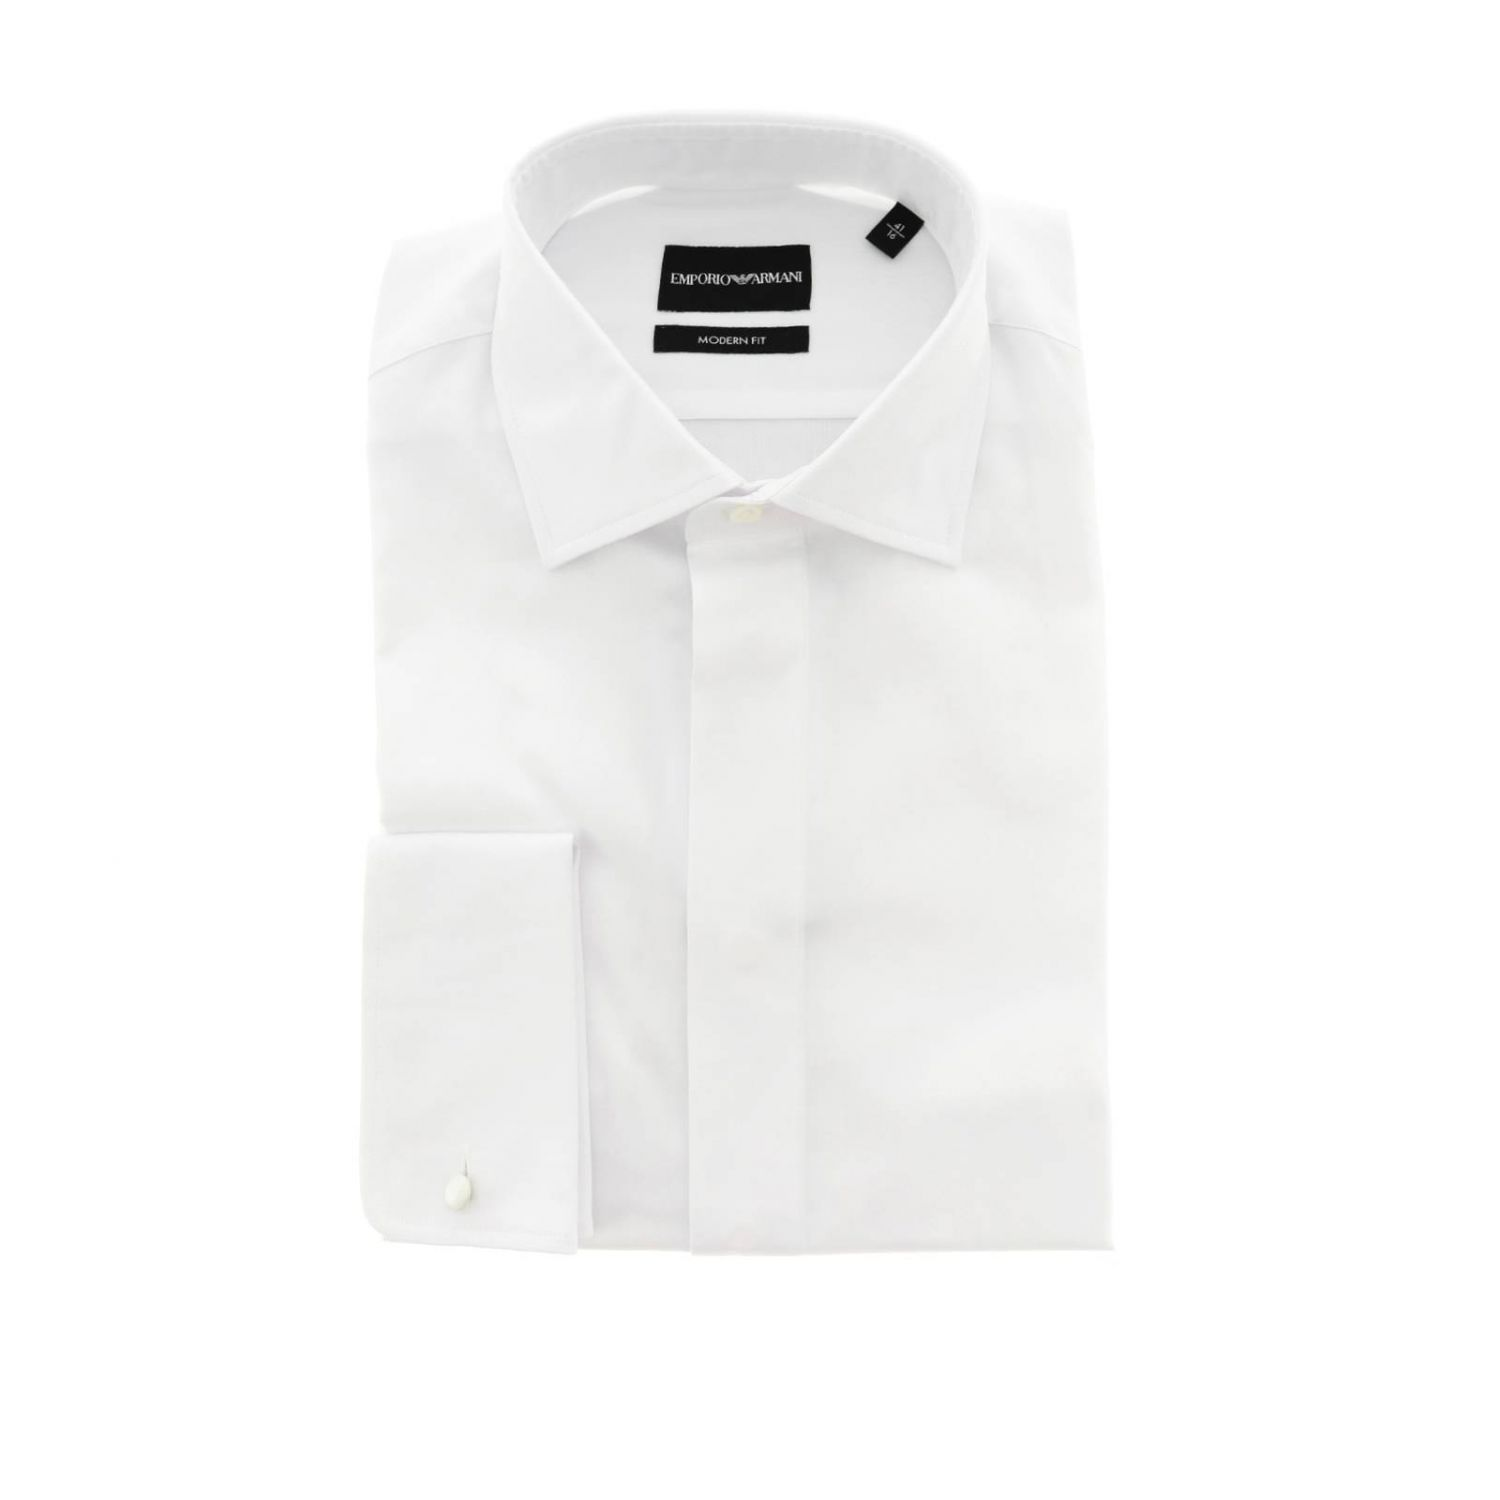 Shirt men Emporio Armani white 1